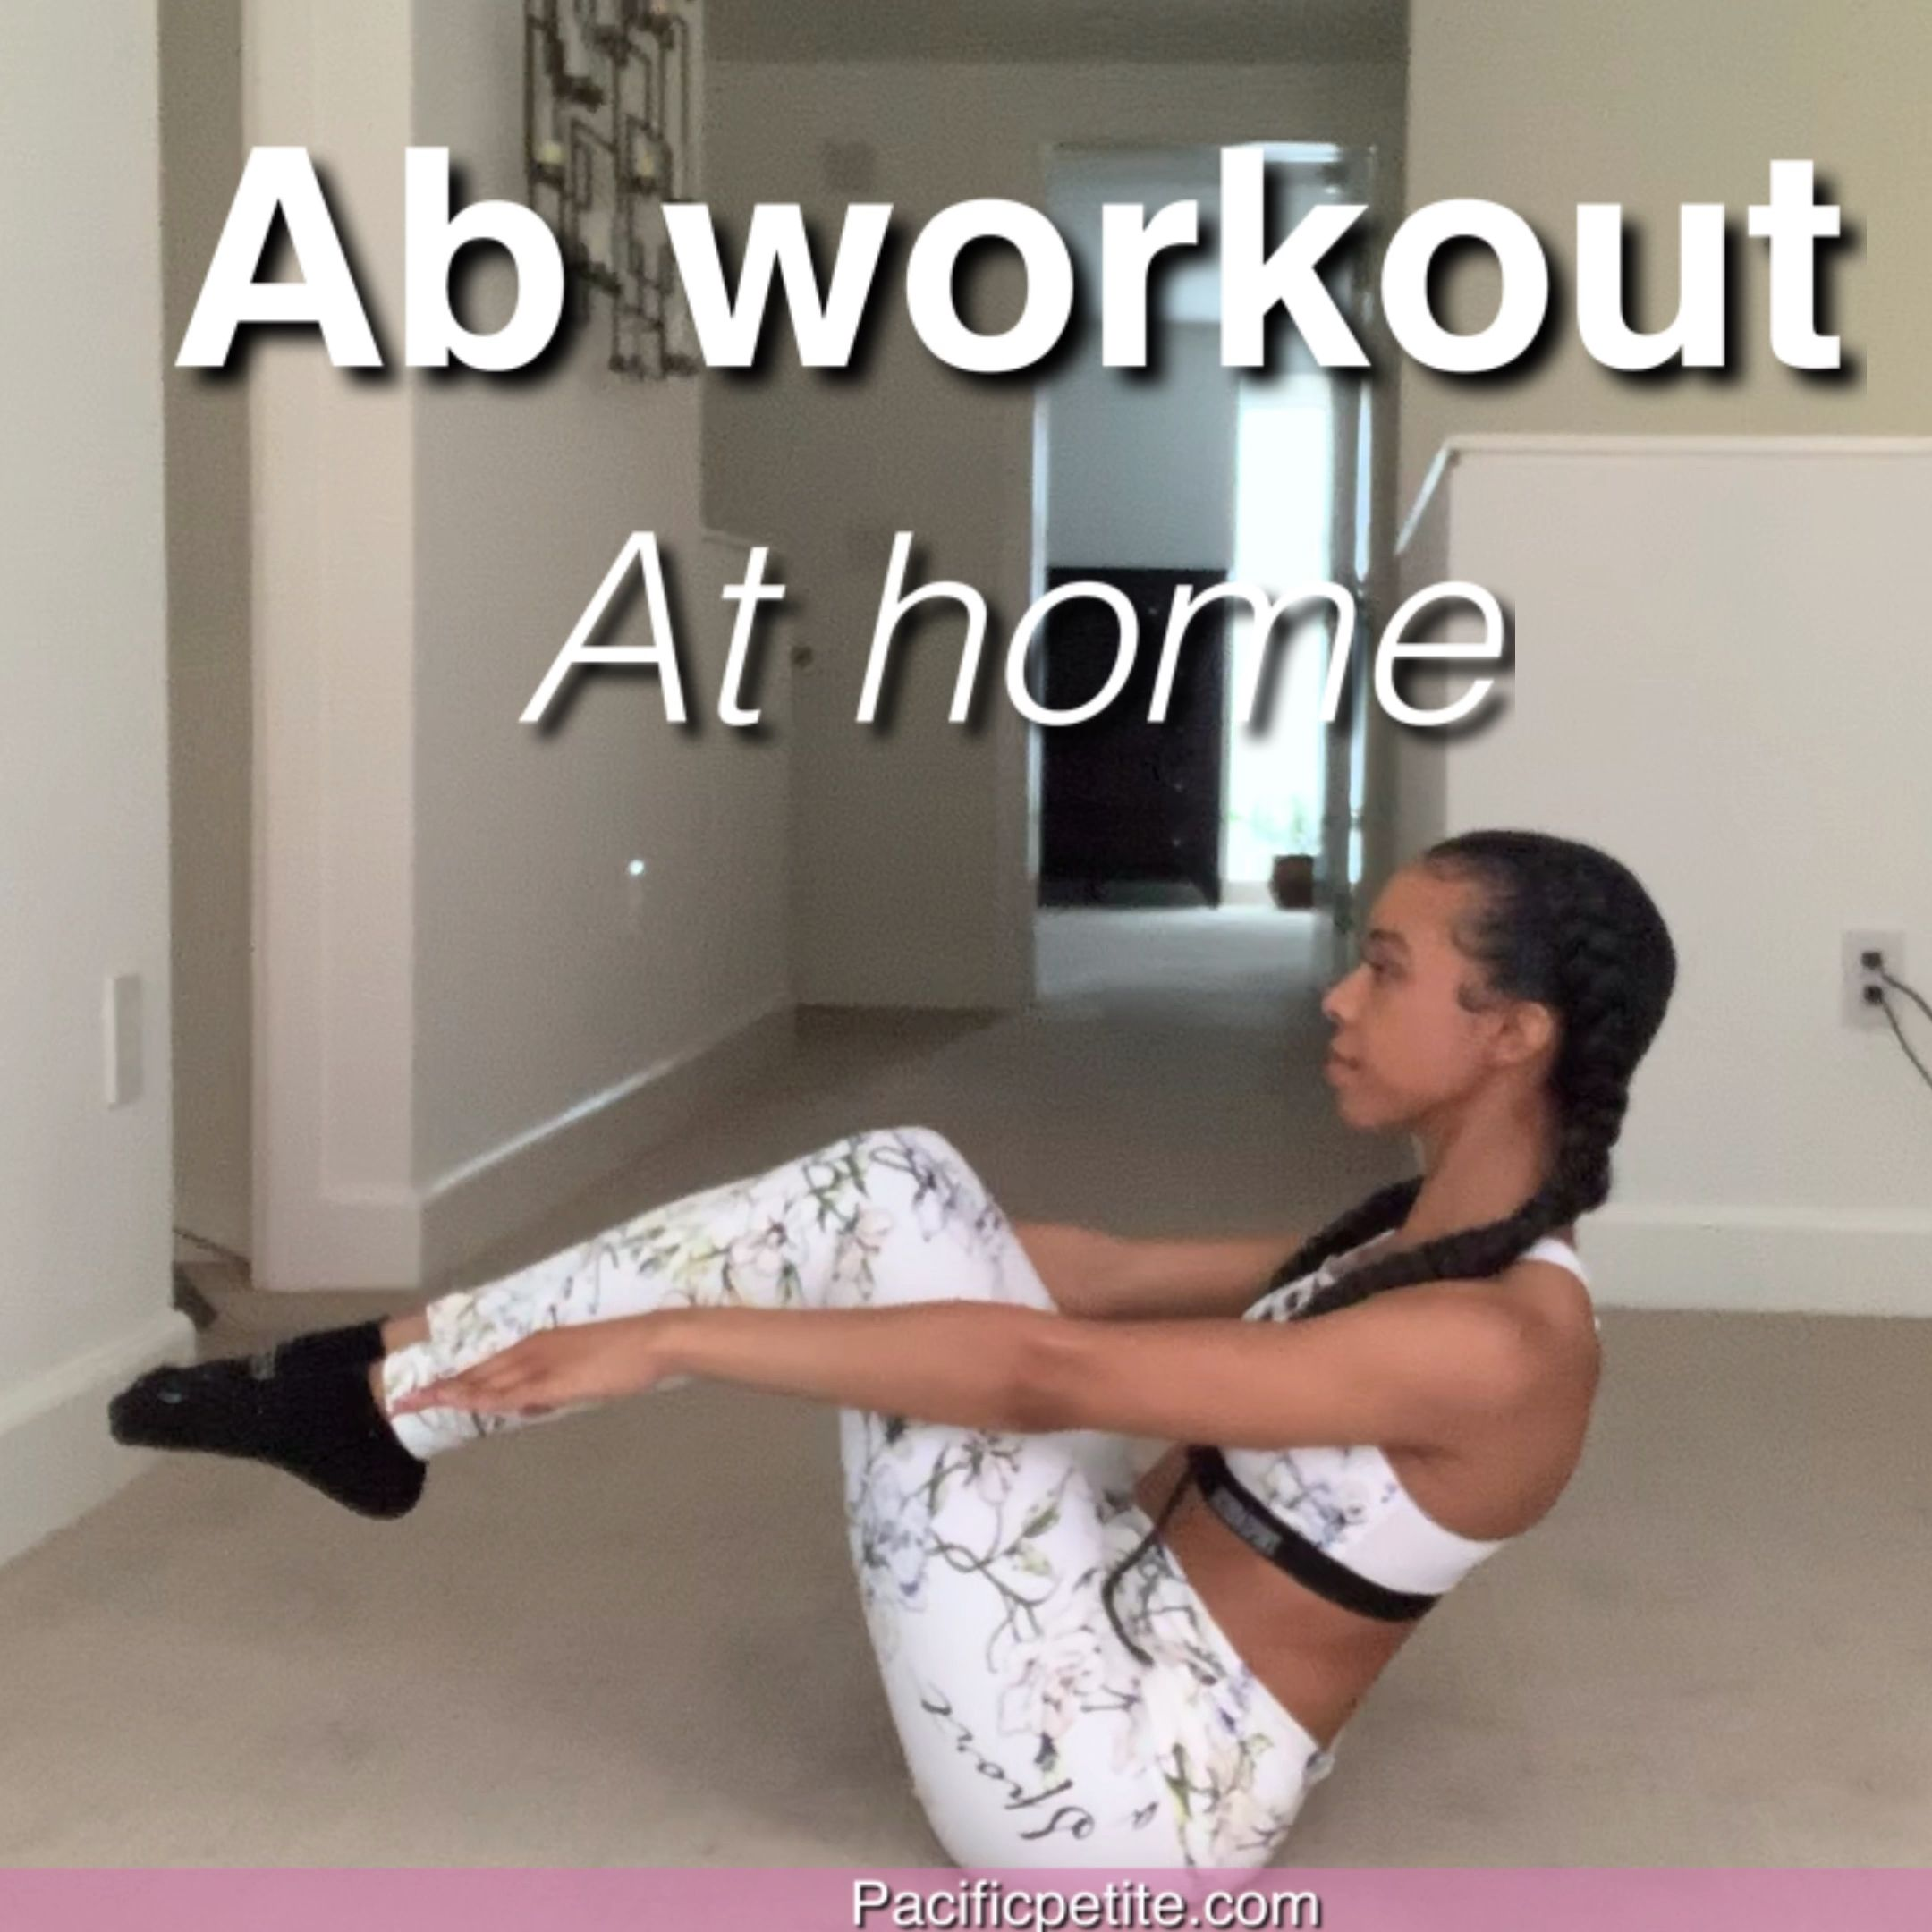 Workout for abs done at home to give a flat tummy, build muscle and six pack, no gym